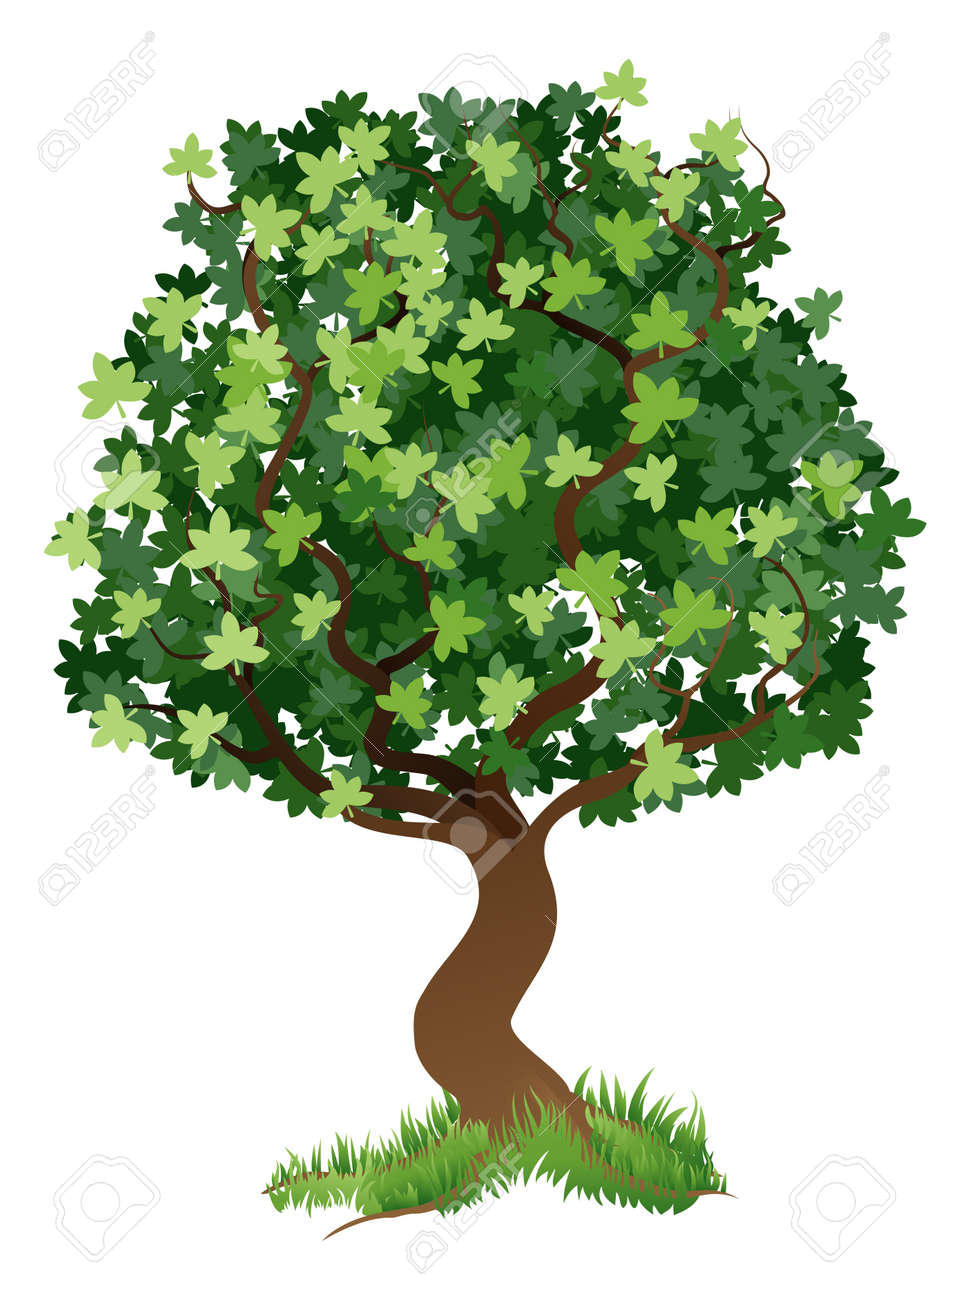 An illustration of a stylised tree with grass around its roots Stock Vector - 11964335